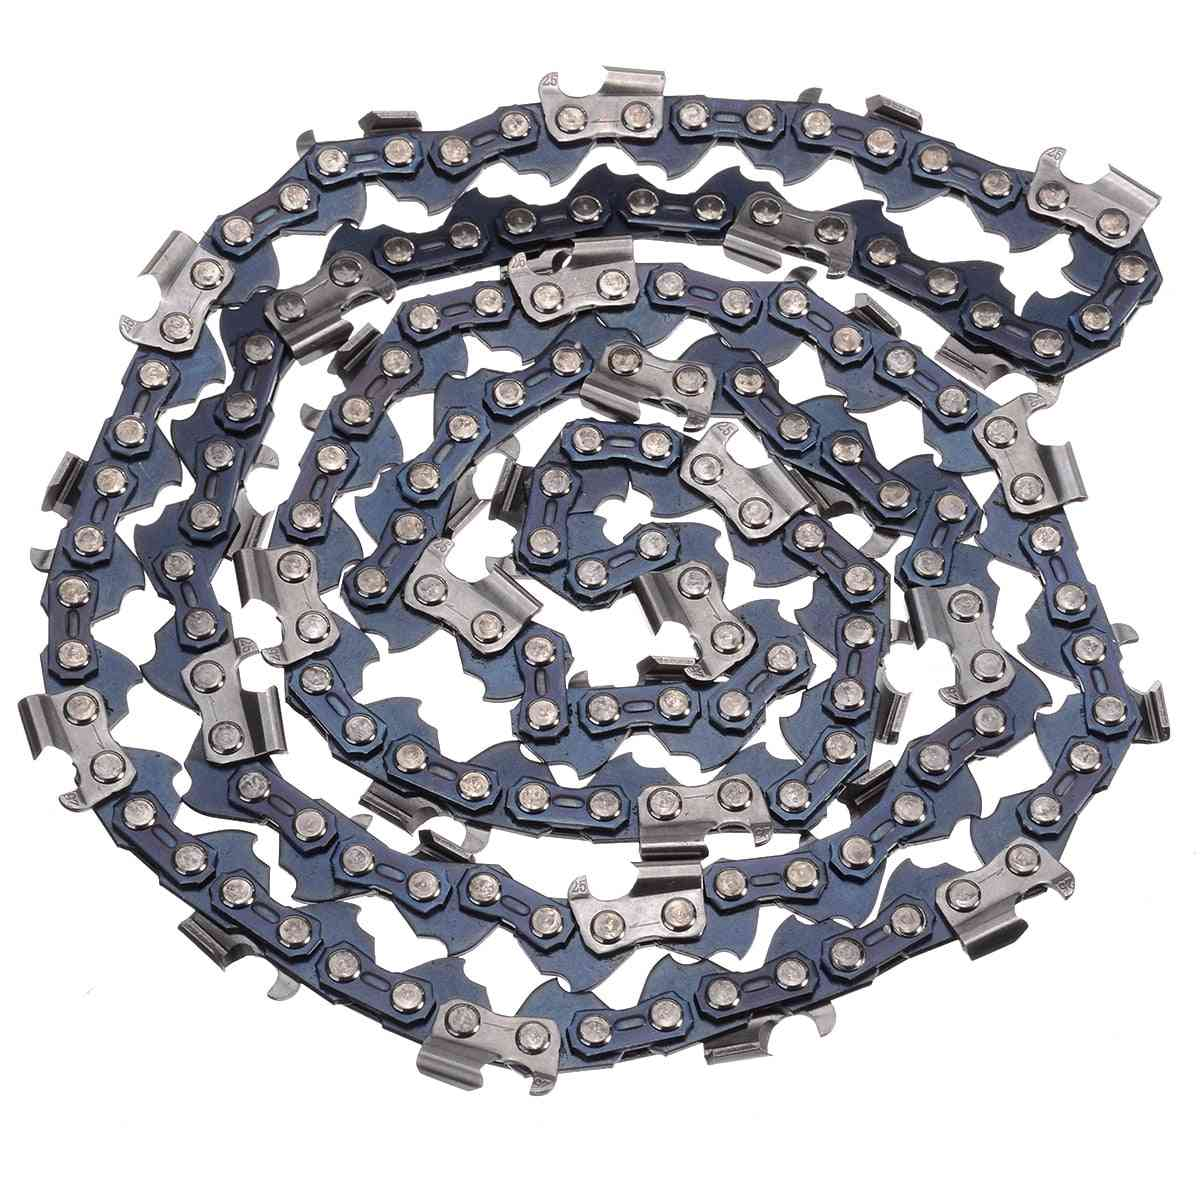 20 Inch Chainsaw Chain, Bar Pitch Blade Wood Cutting 76 Drive Links Replacement Parts